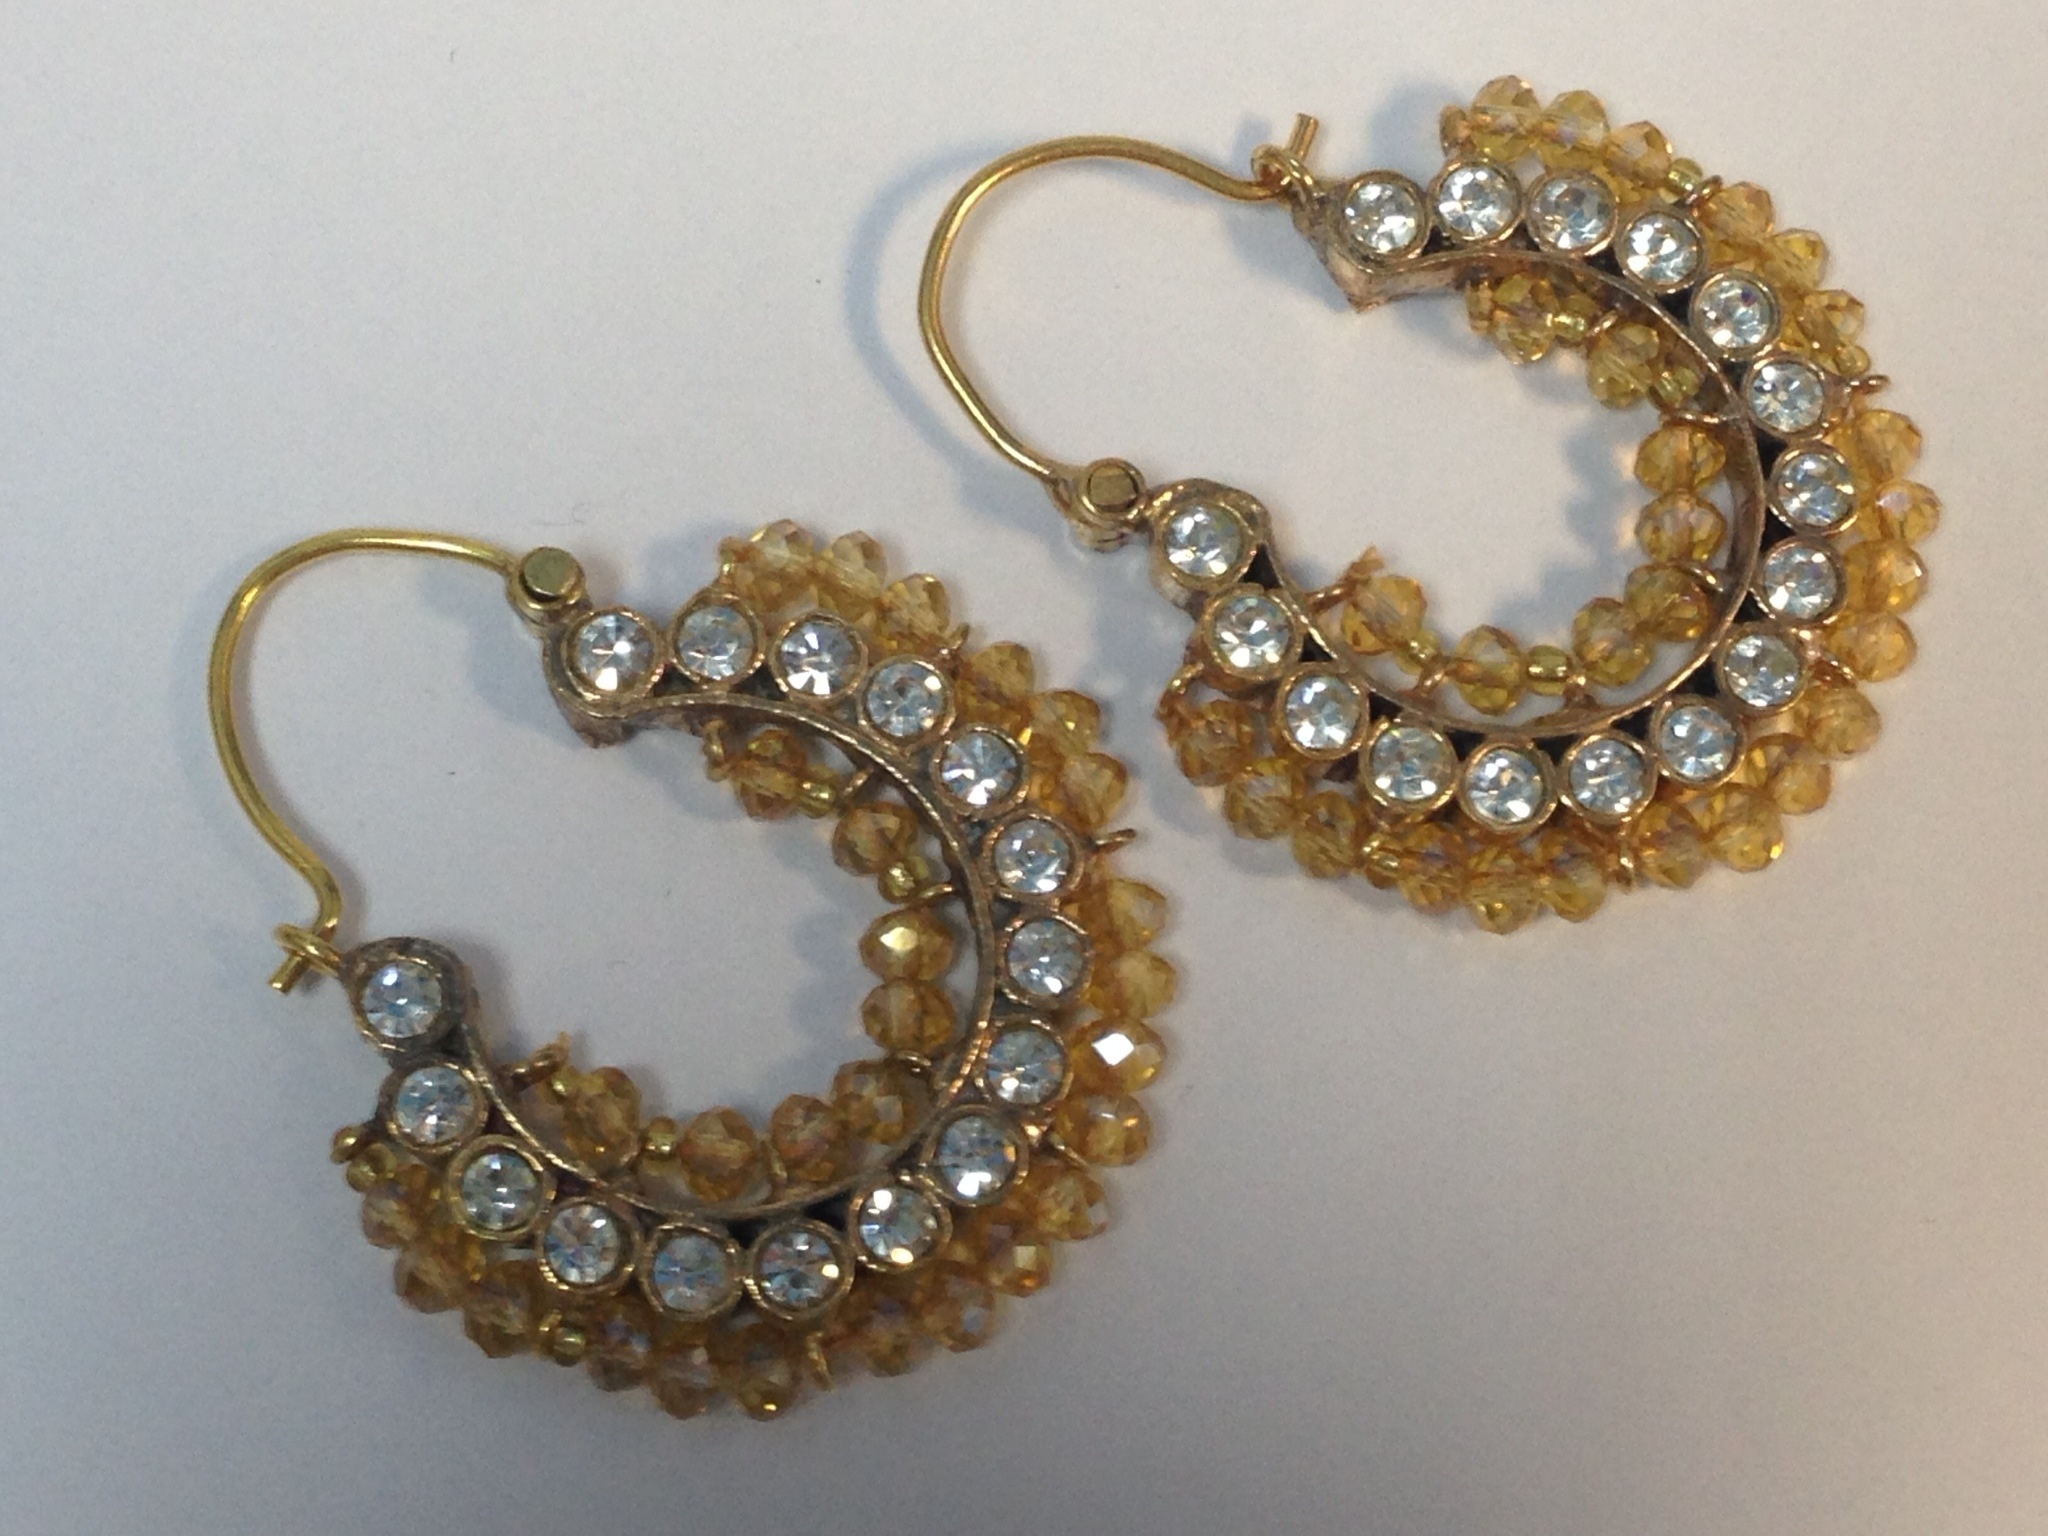 Kundan Chand Bali Exquisite Real gems Earrings